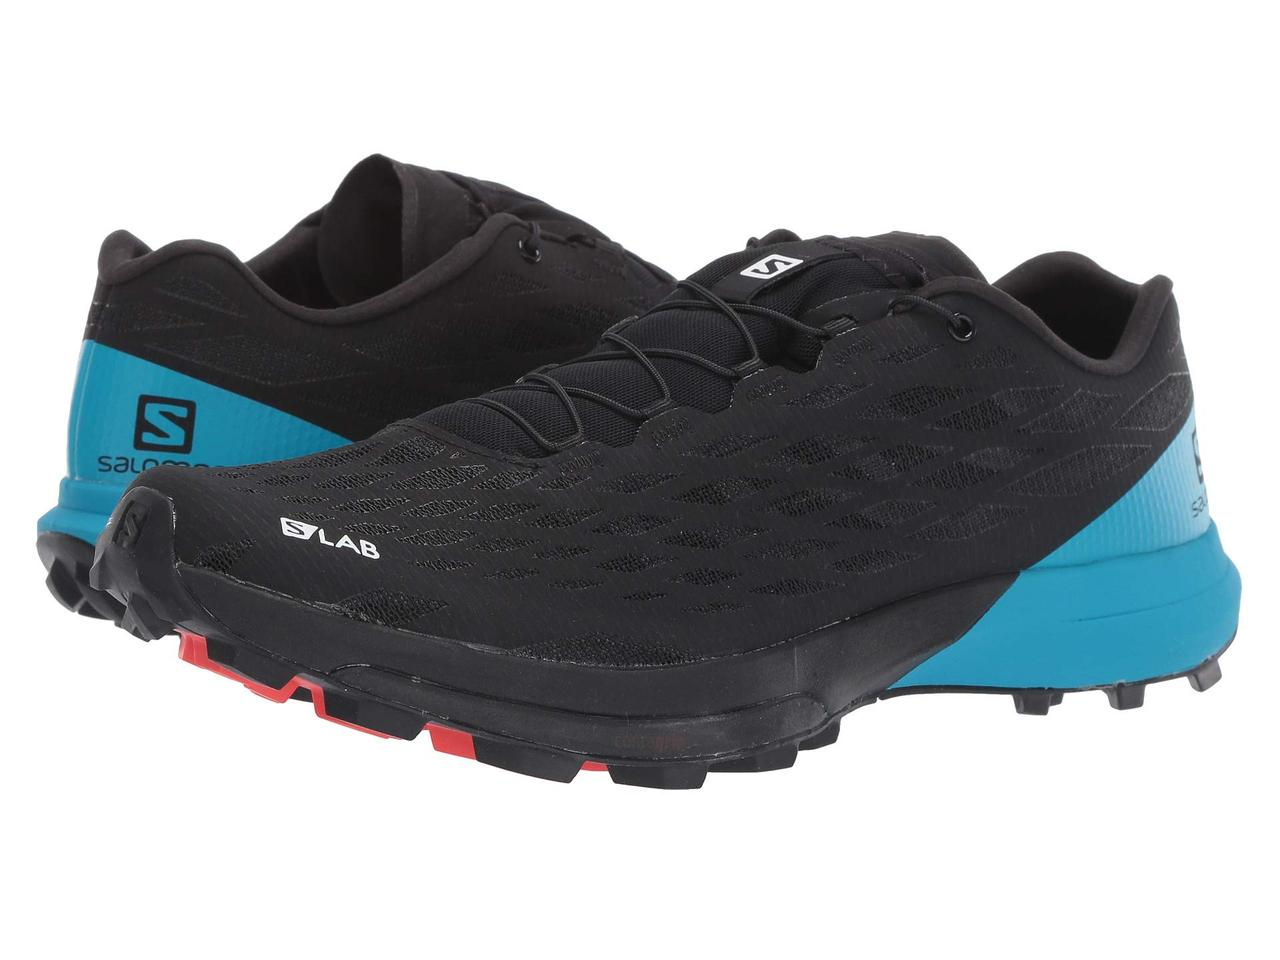 Кроссовки/Кеды (Оригинал) Salomon S/Lab XA Amphib 2 Black/Black/Transcend Blue